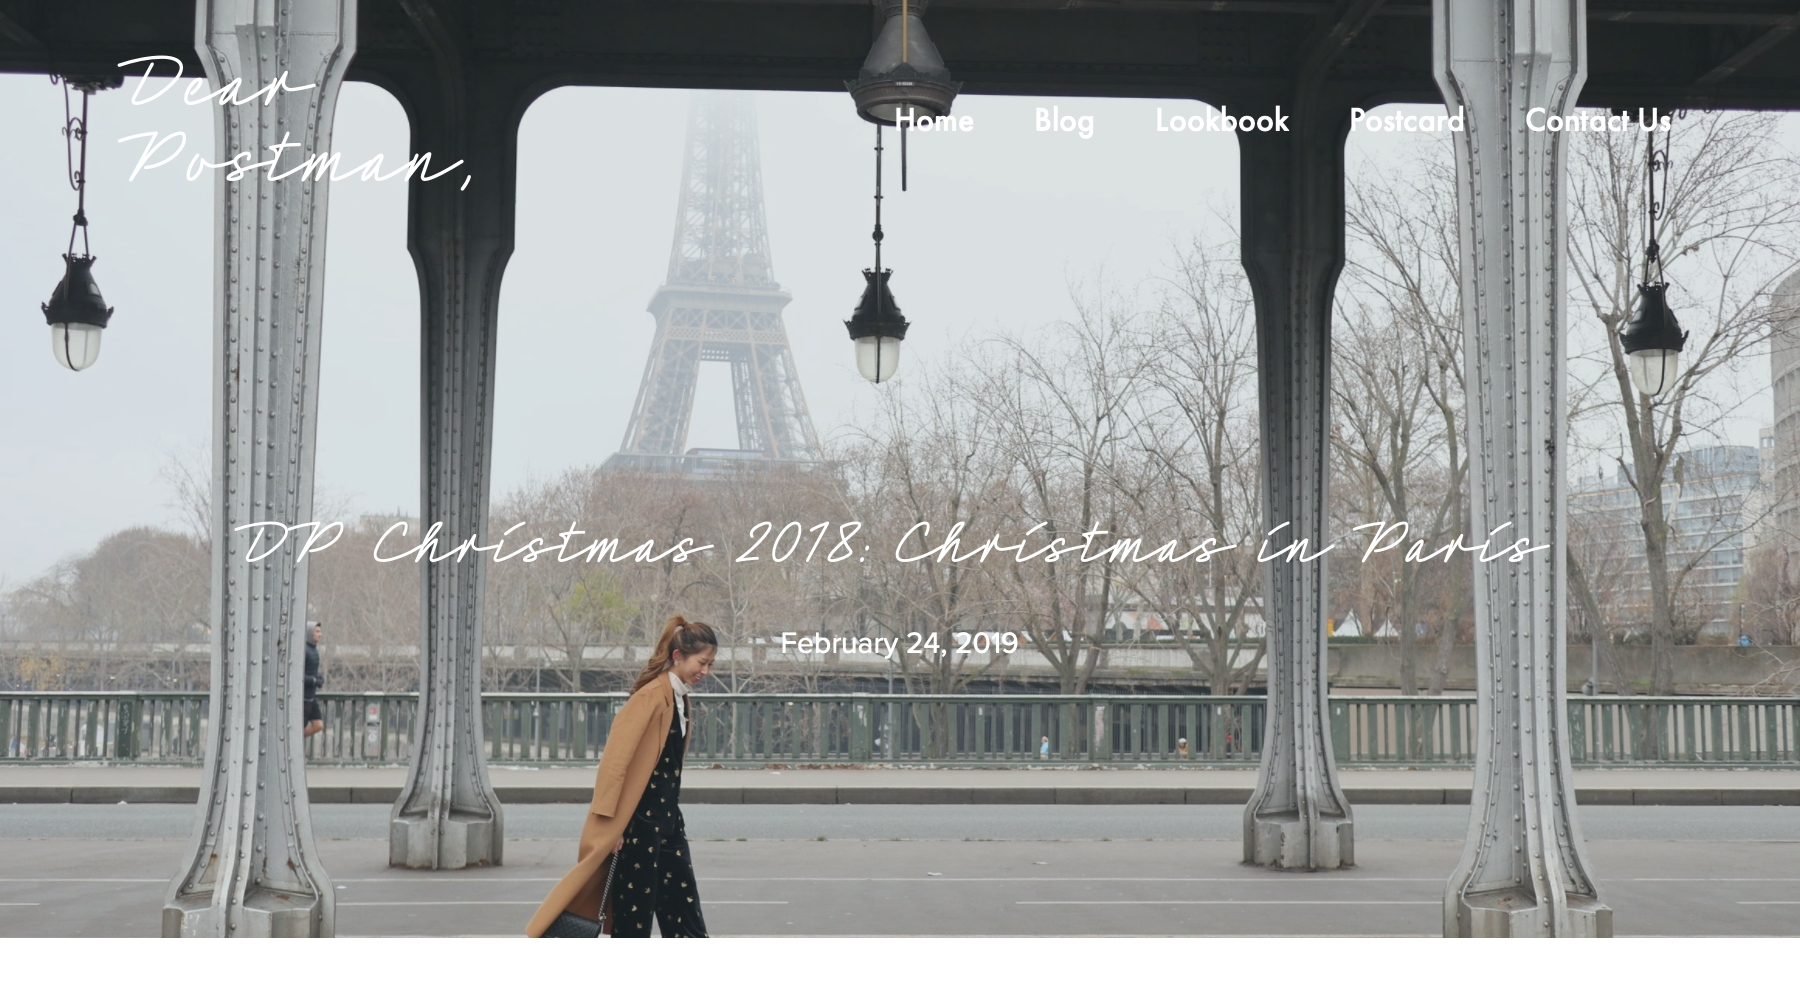 DP Christmas 2018: Christmas in Paris